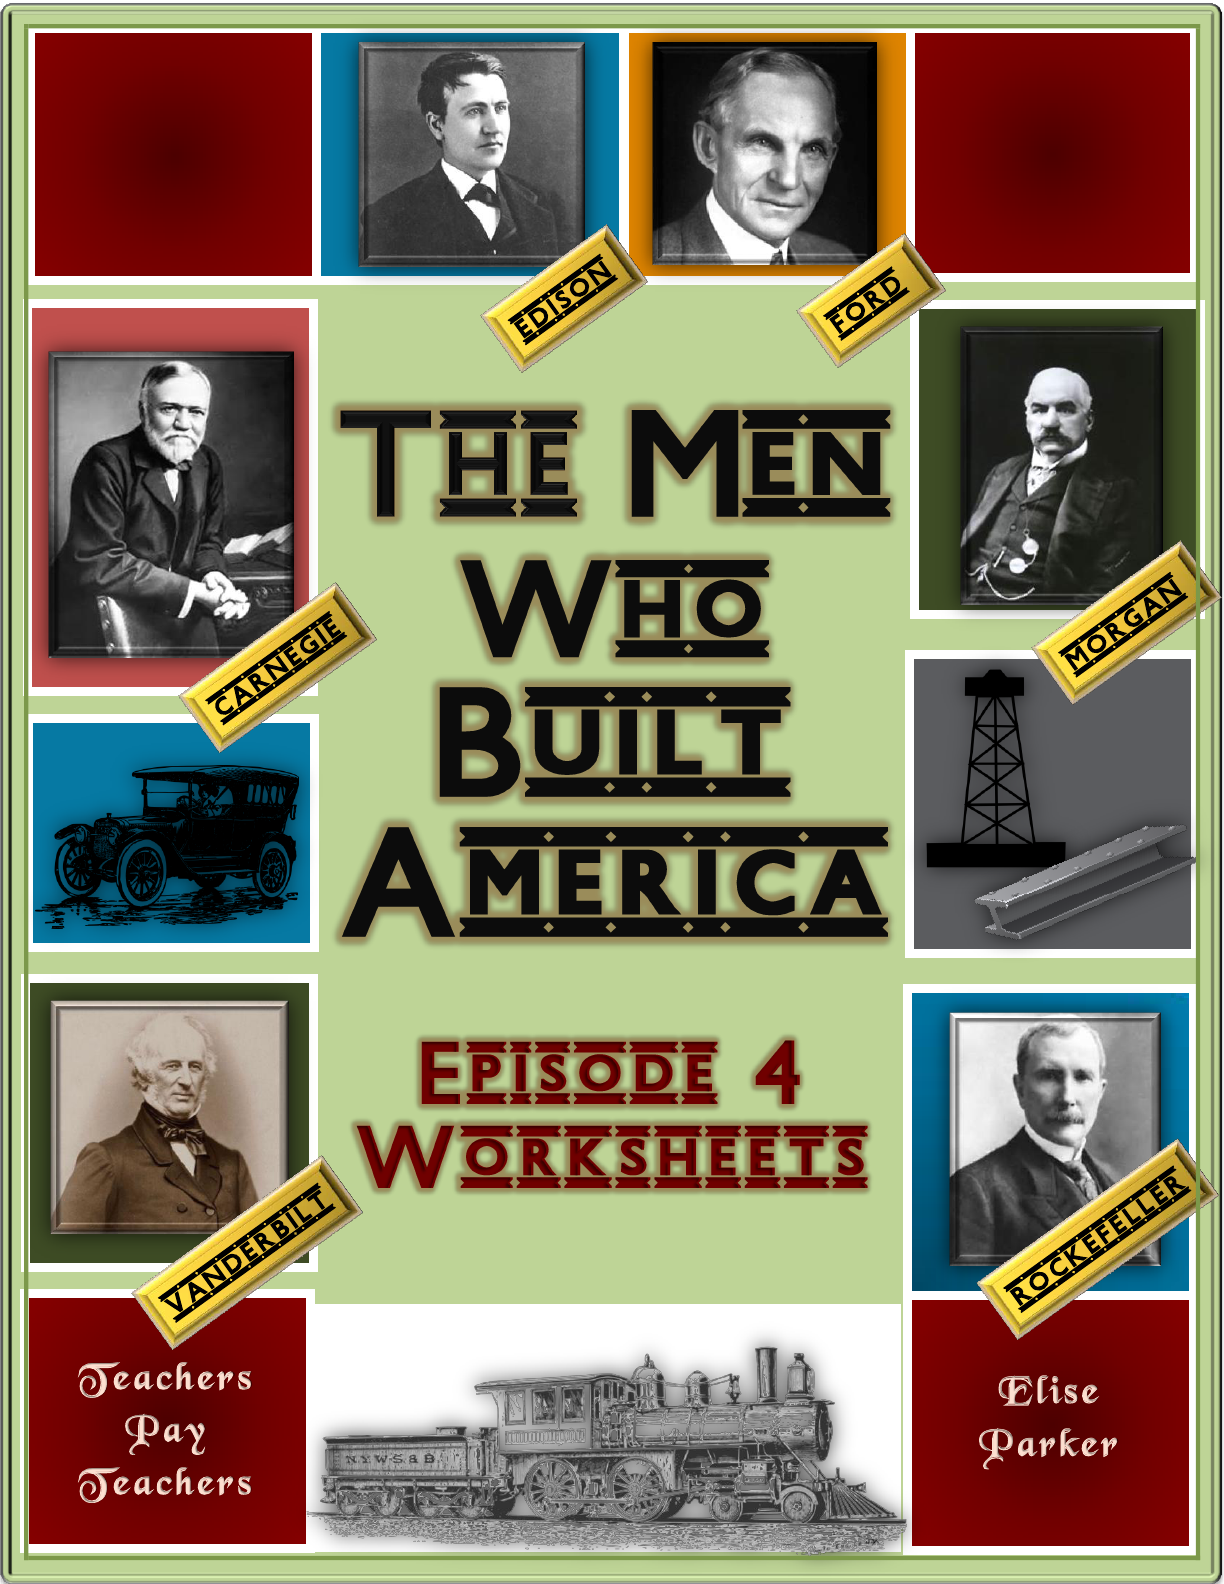 The Men Who Built America Episode 4 Worksheets